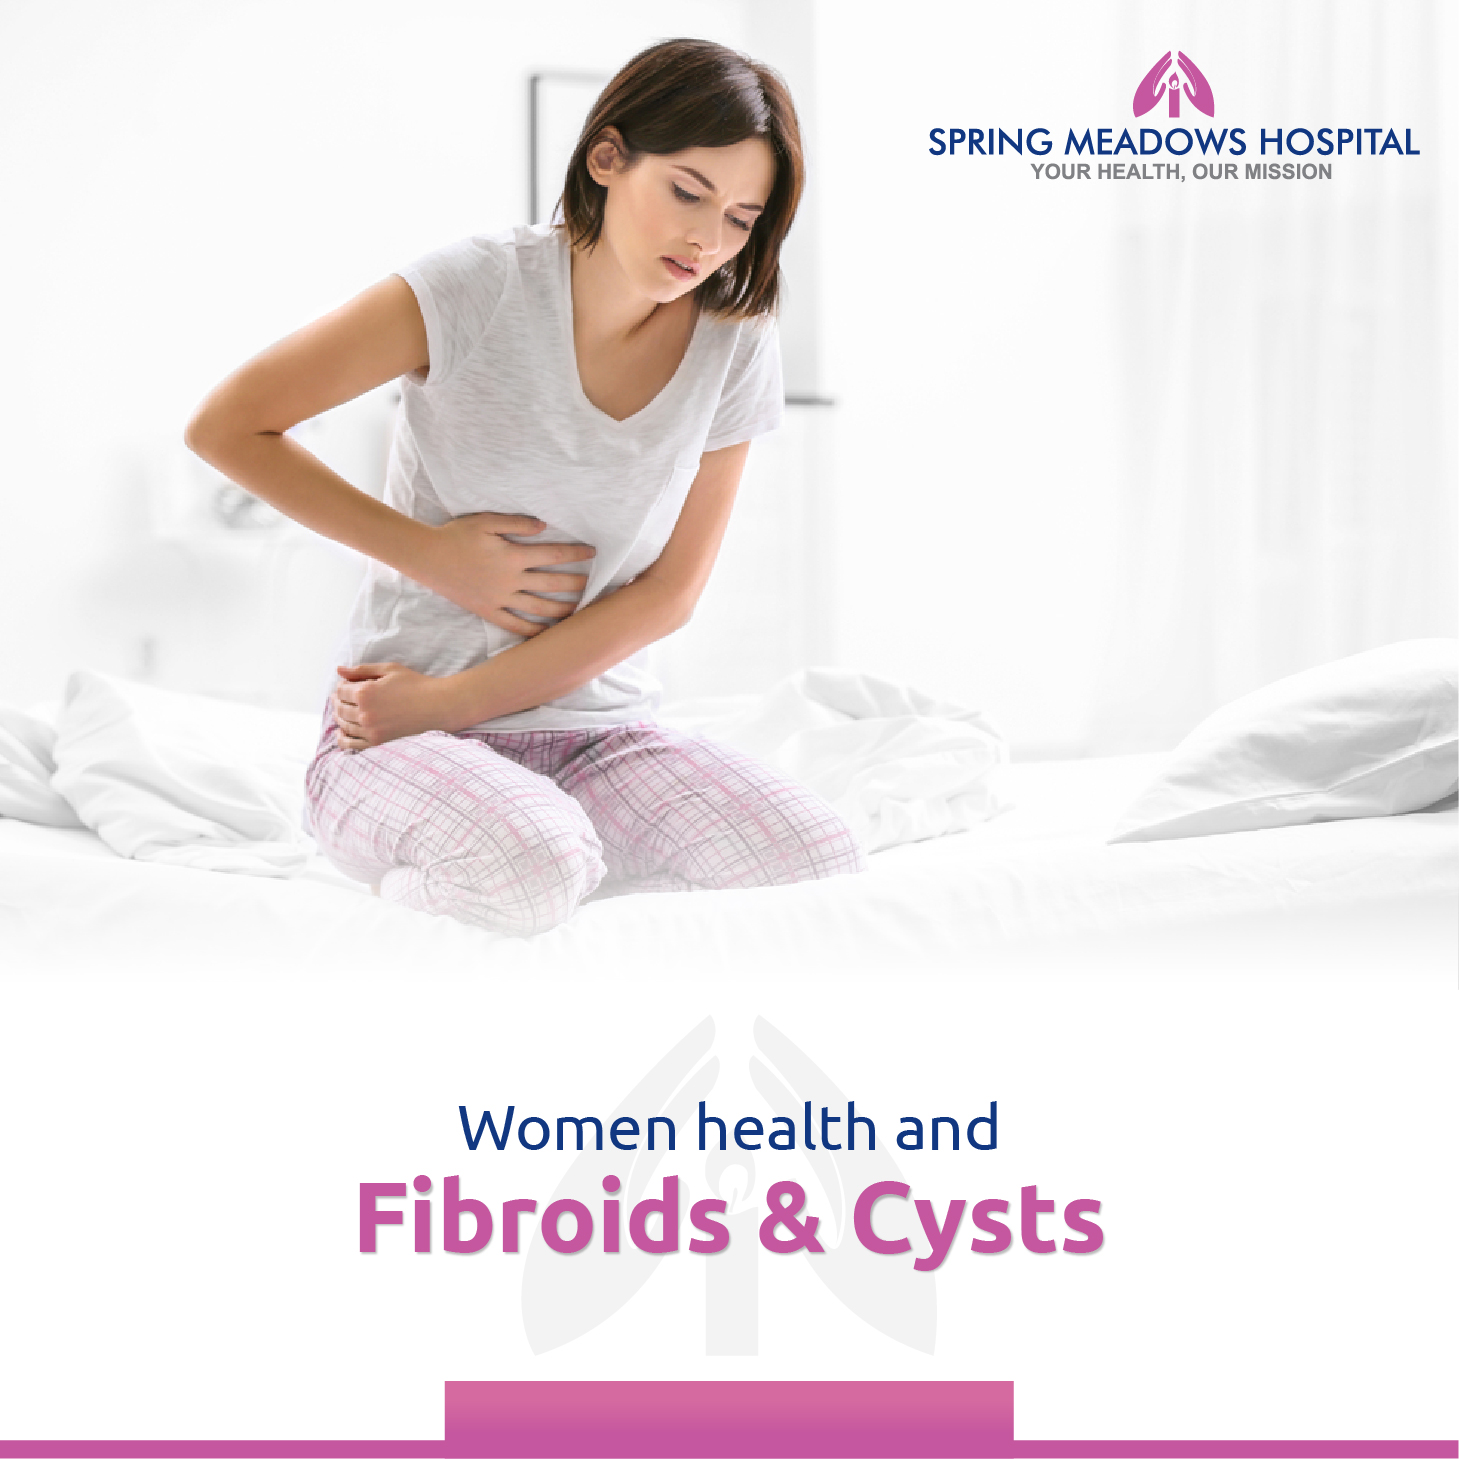 Women health and Fibroids